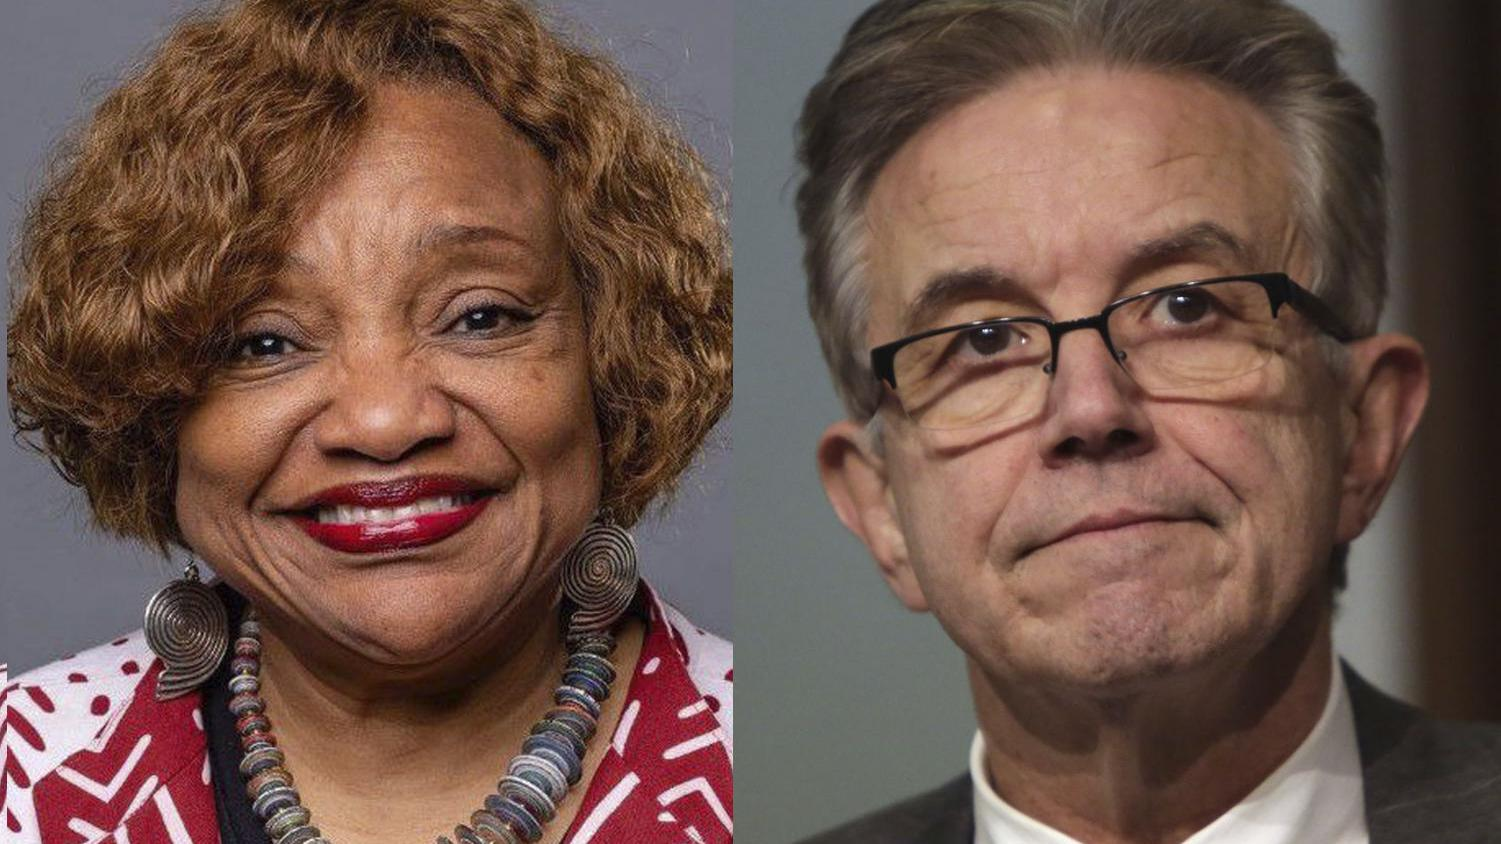 Standoff: Two St. Louis County council members each want the other sidelined during ethics hearings